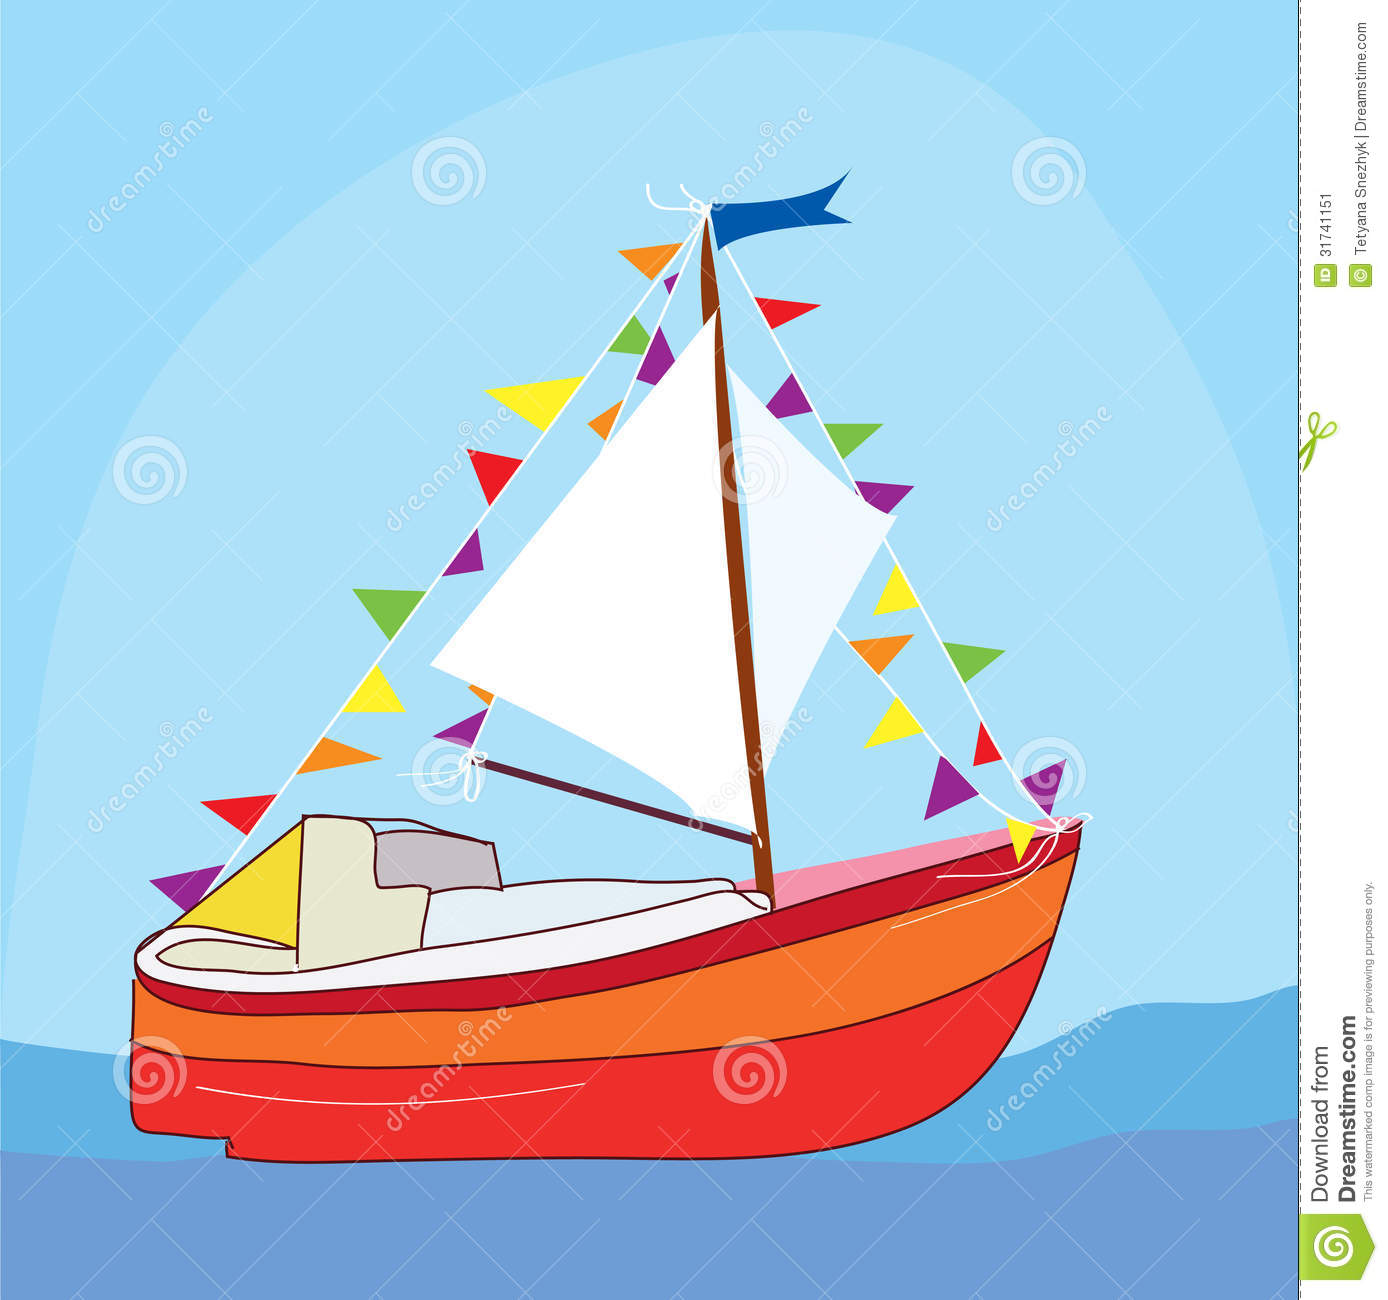 Funny yacht at the sea stock vector. Image of ocean, maritime - 31741151